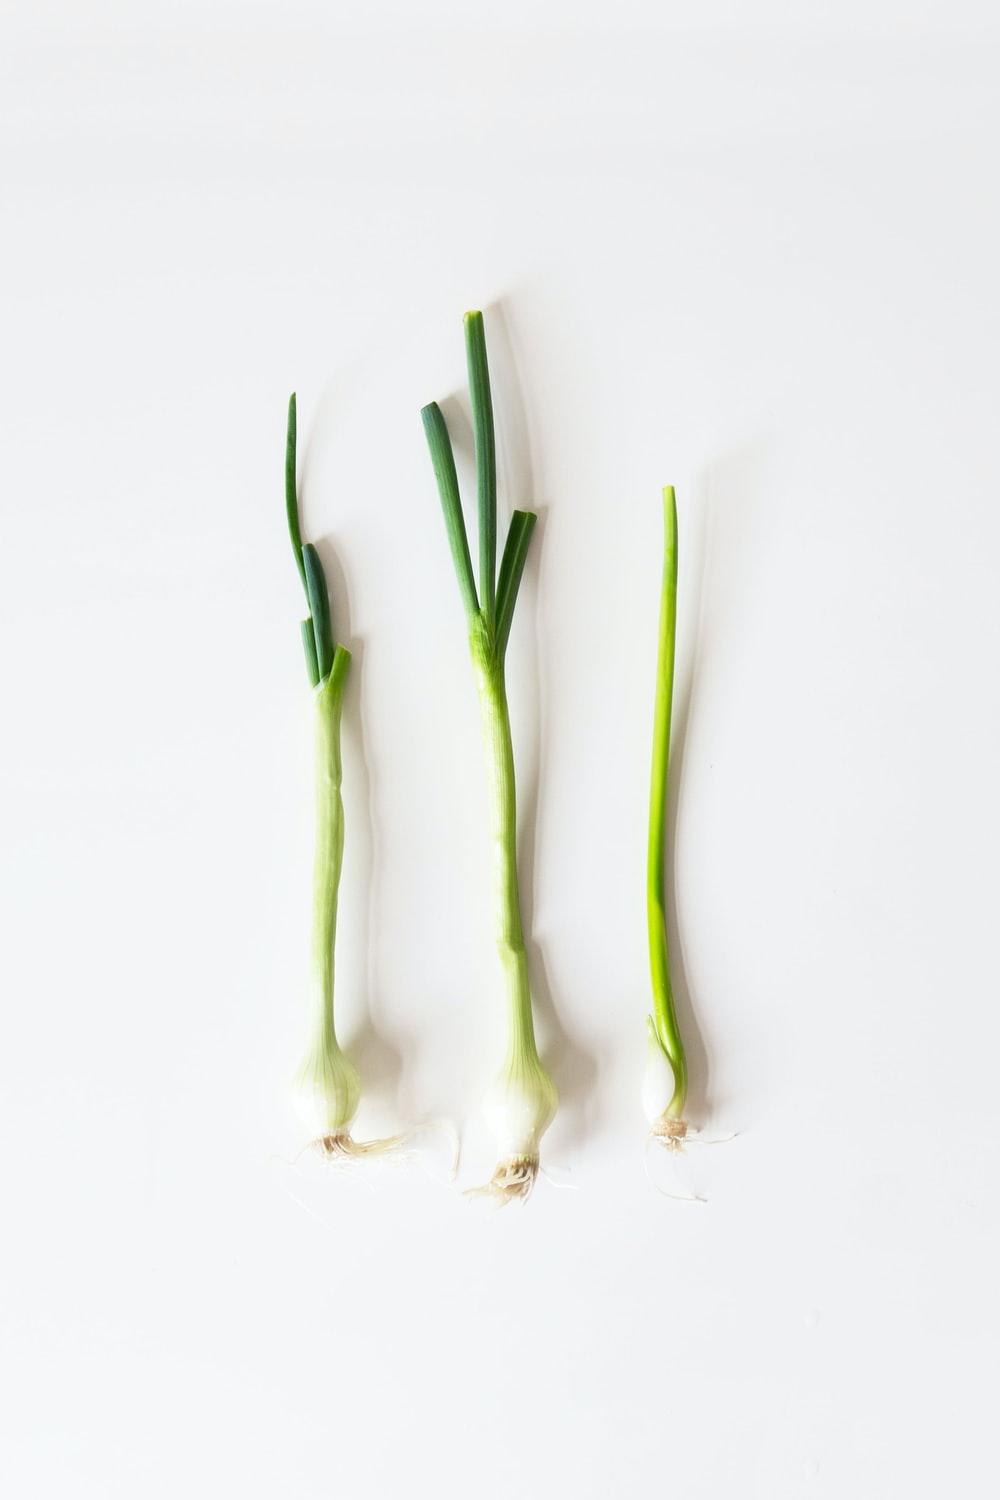 green spring onions